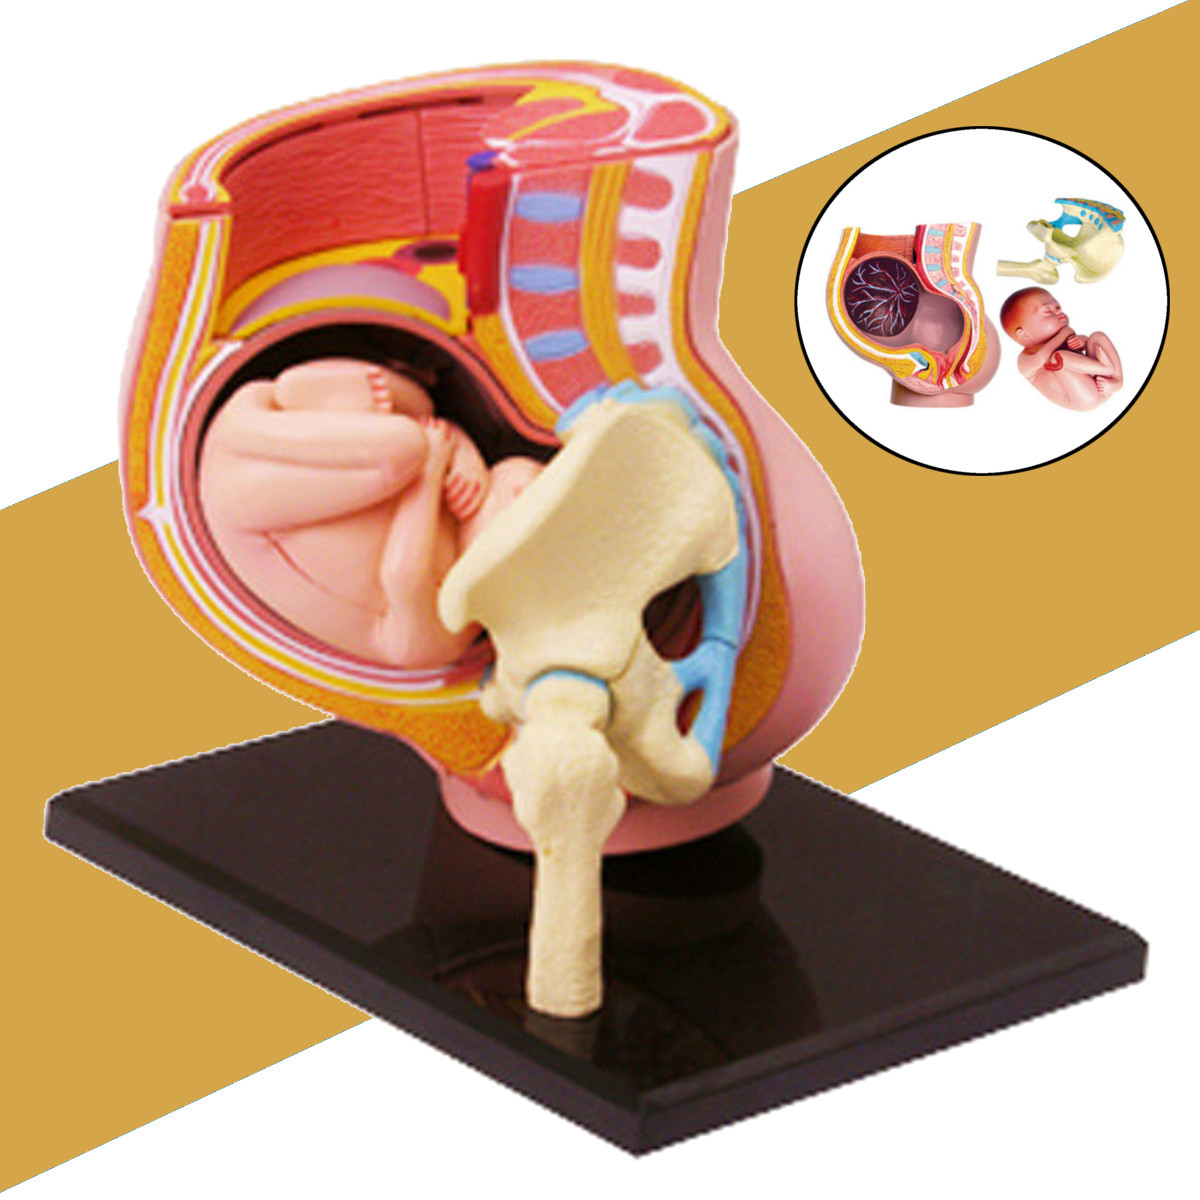 Human Women Pregnant Pelvis Teaching Resources Anatomical Section Model Sets With Baby Fetus Assembled Science Toy School Lab